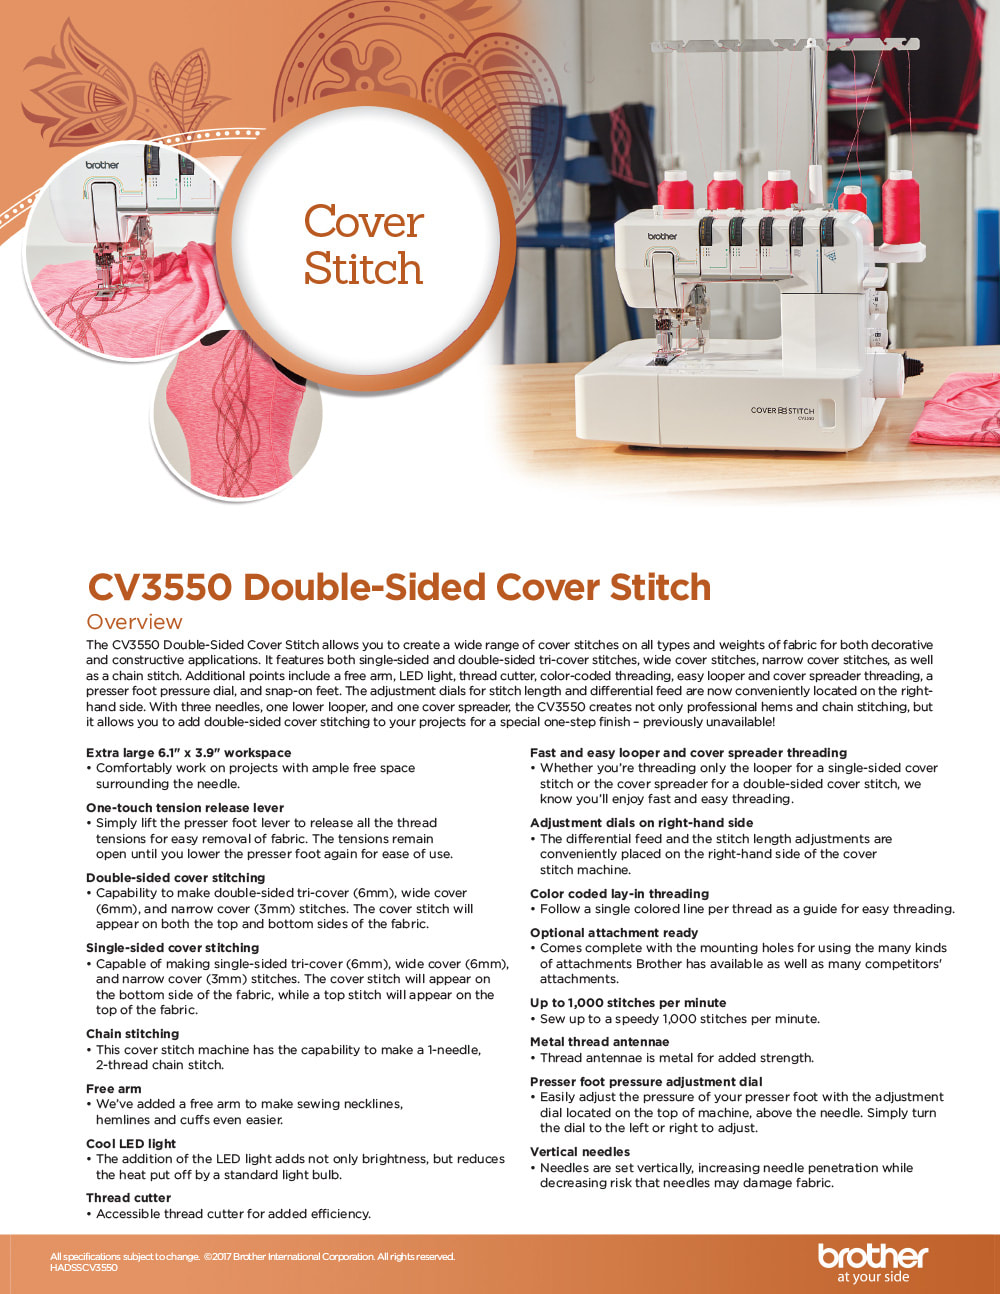 Brother CV3550 Double Sided Cover Stitch Machine